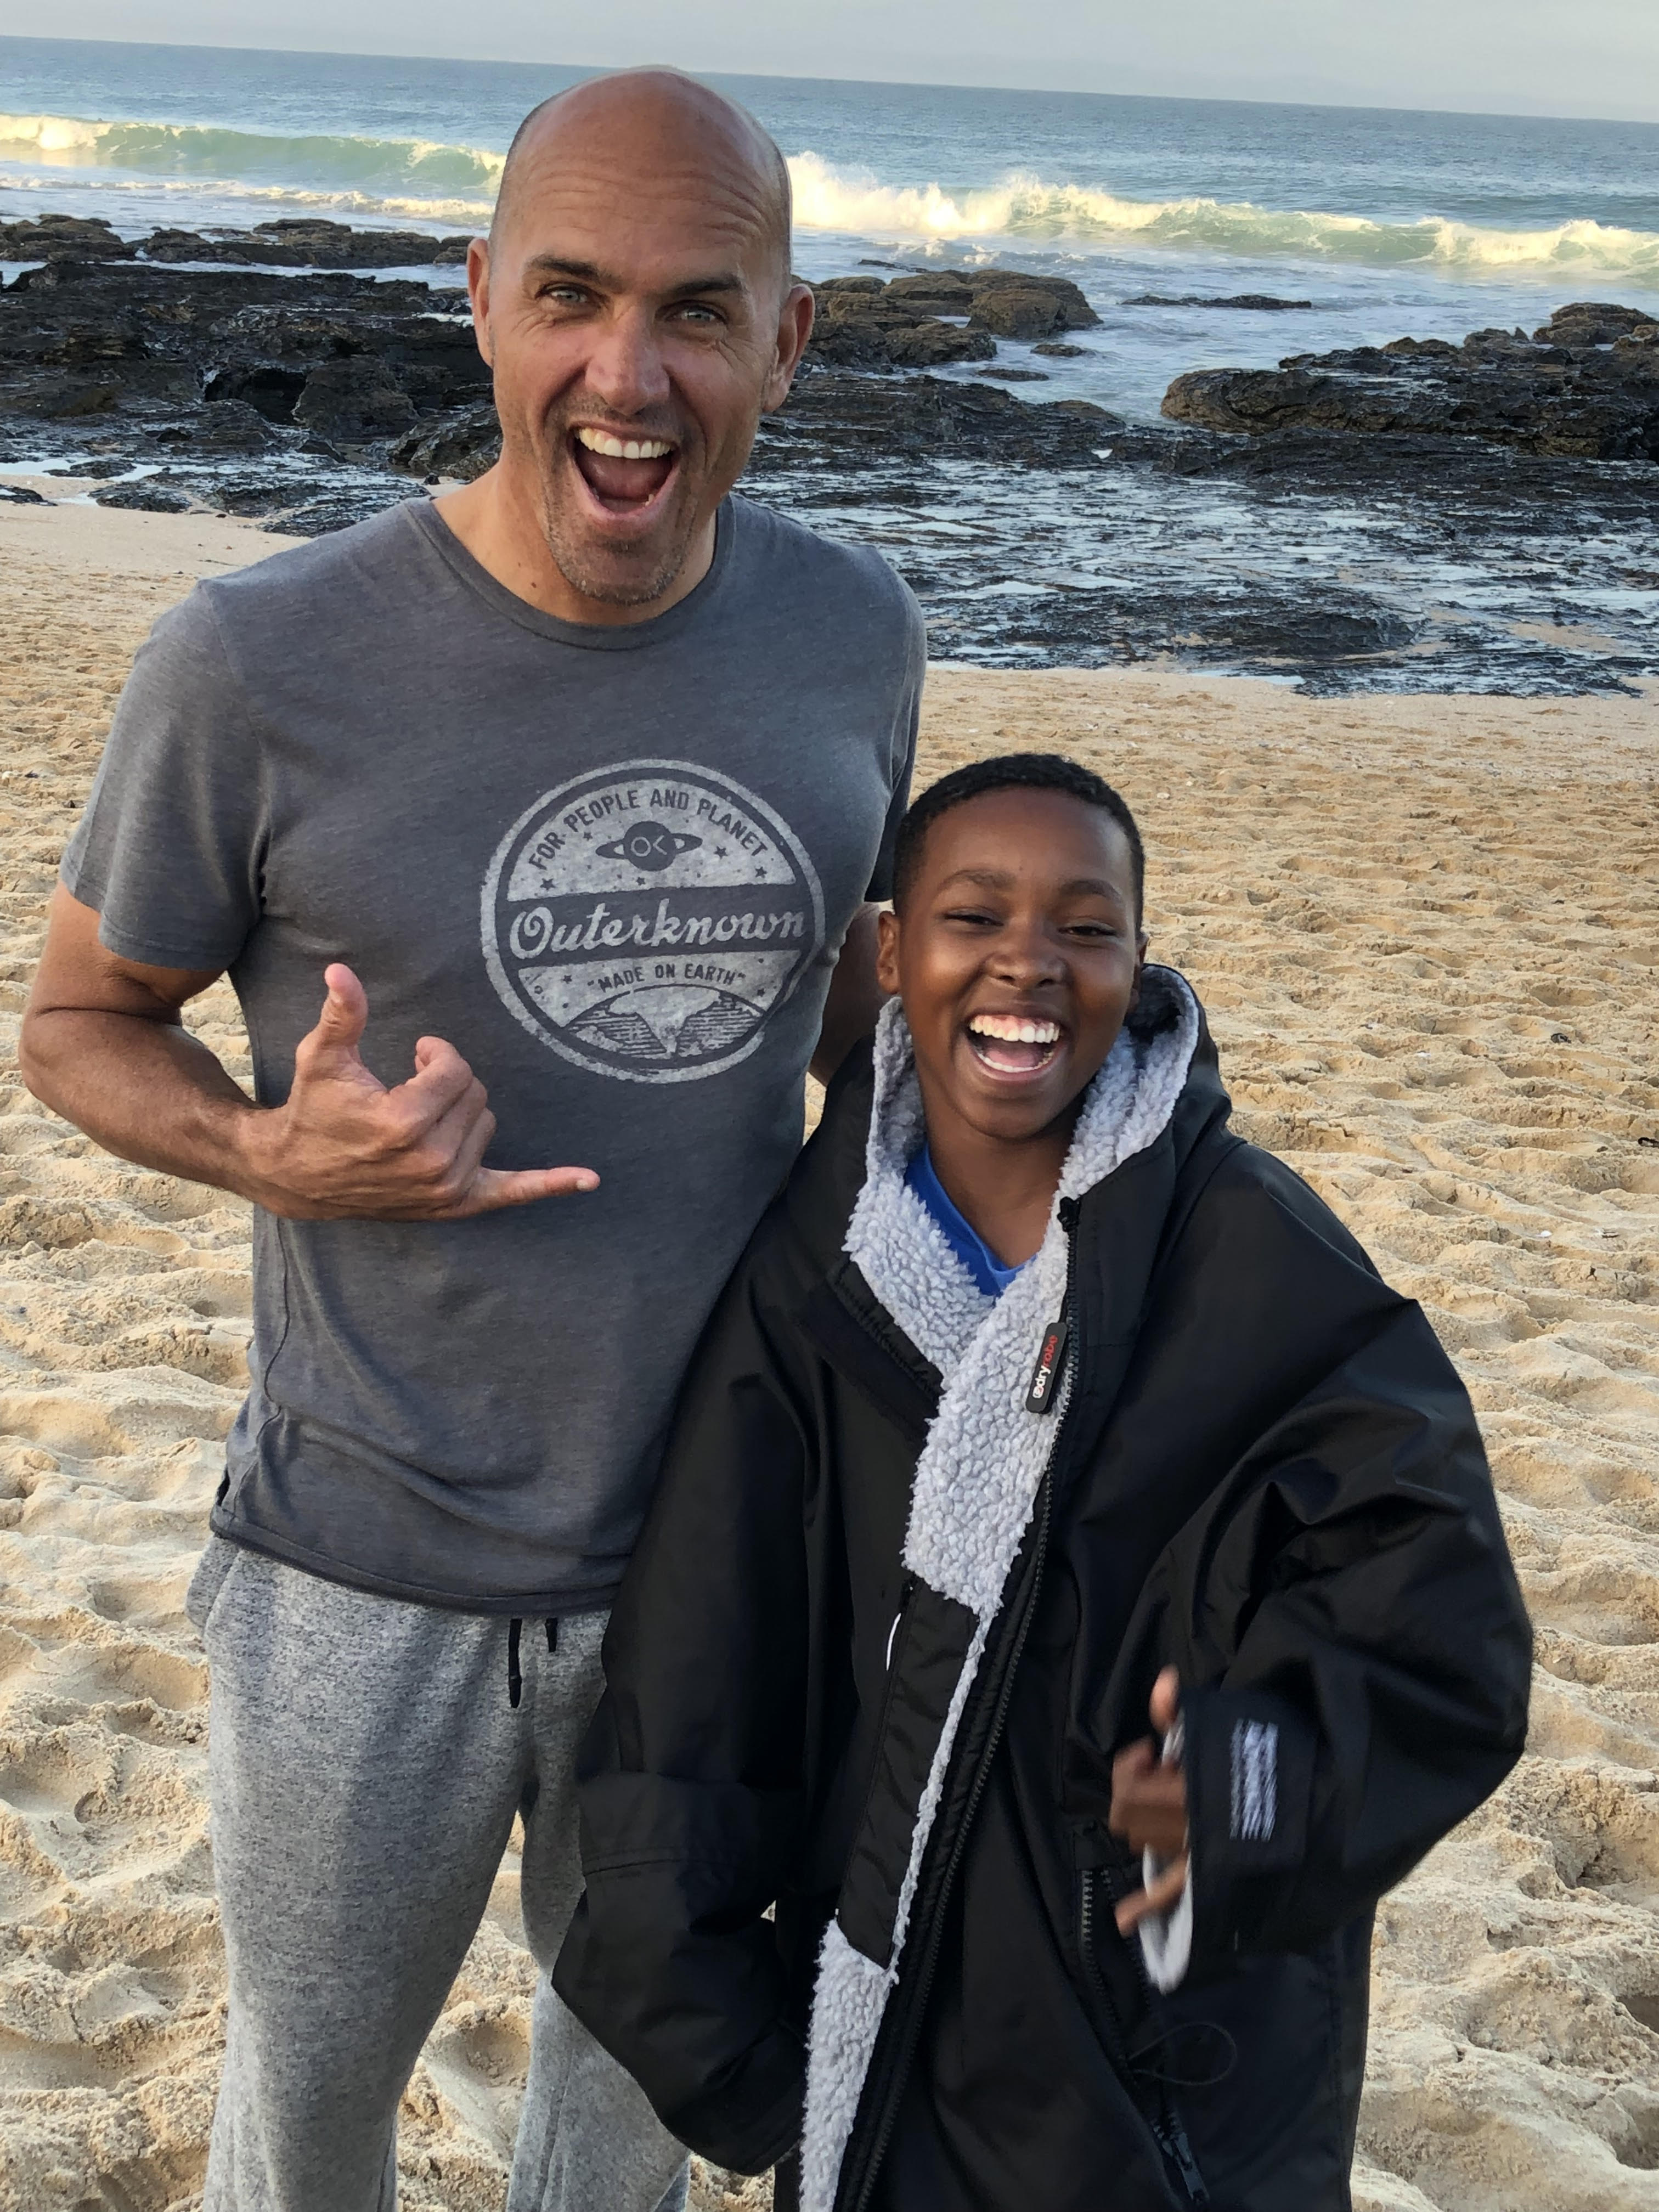 Kelly Slater with Surfers Not Street Children at JBay Open 2019